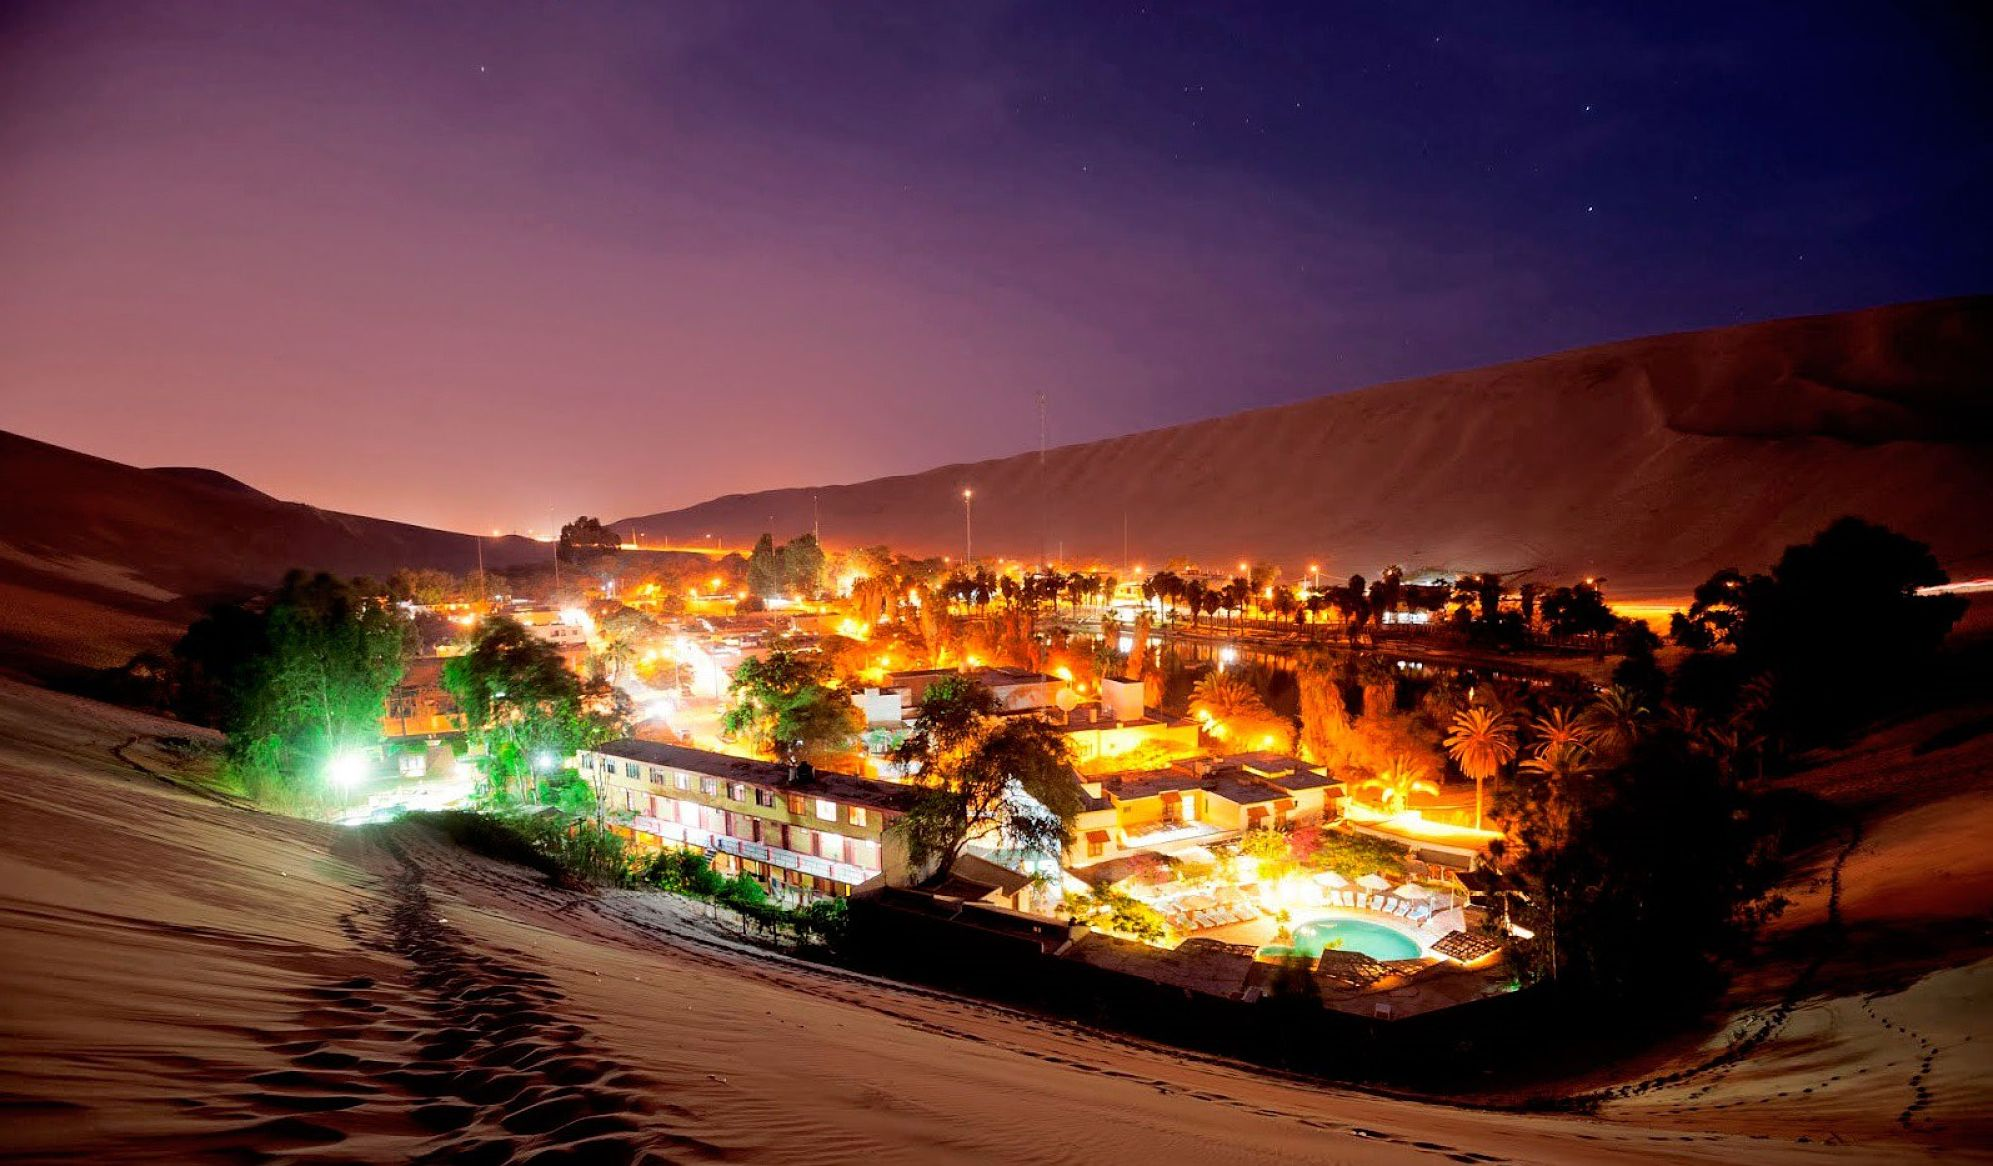 oasis-de-huacachina_opt